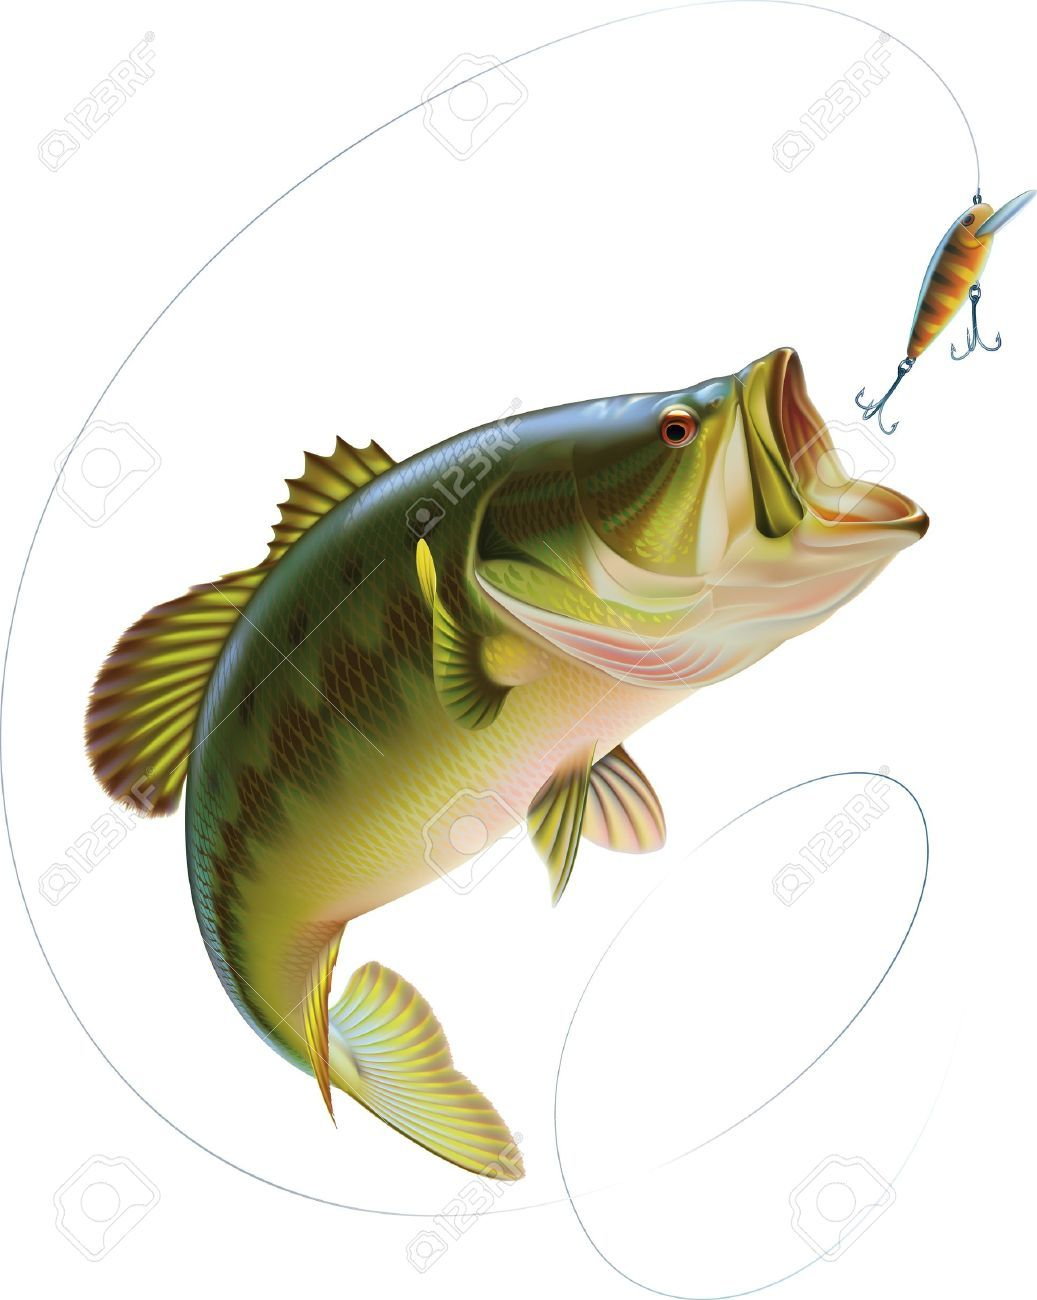 Bass Jumping Out of Water Clipart (65+) | Fish | Pinterest